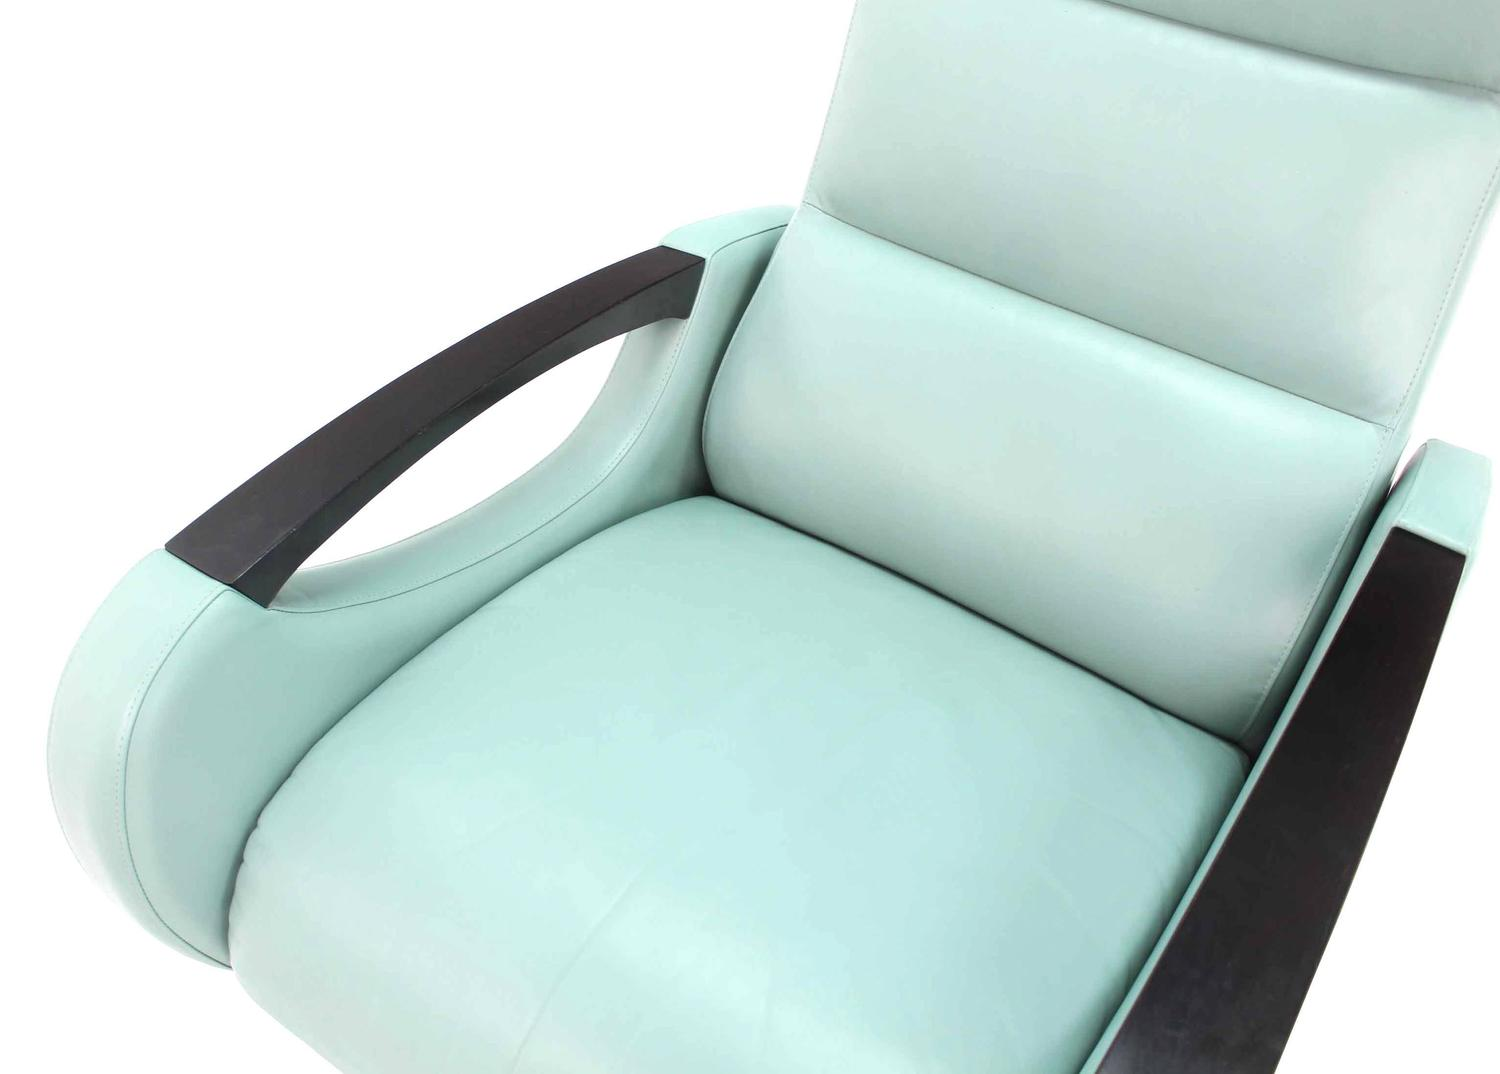 Pair of mid century modern leather recliner lounge chairs for sale at 1stdibs for Modern leather chaise longue